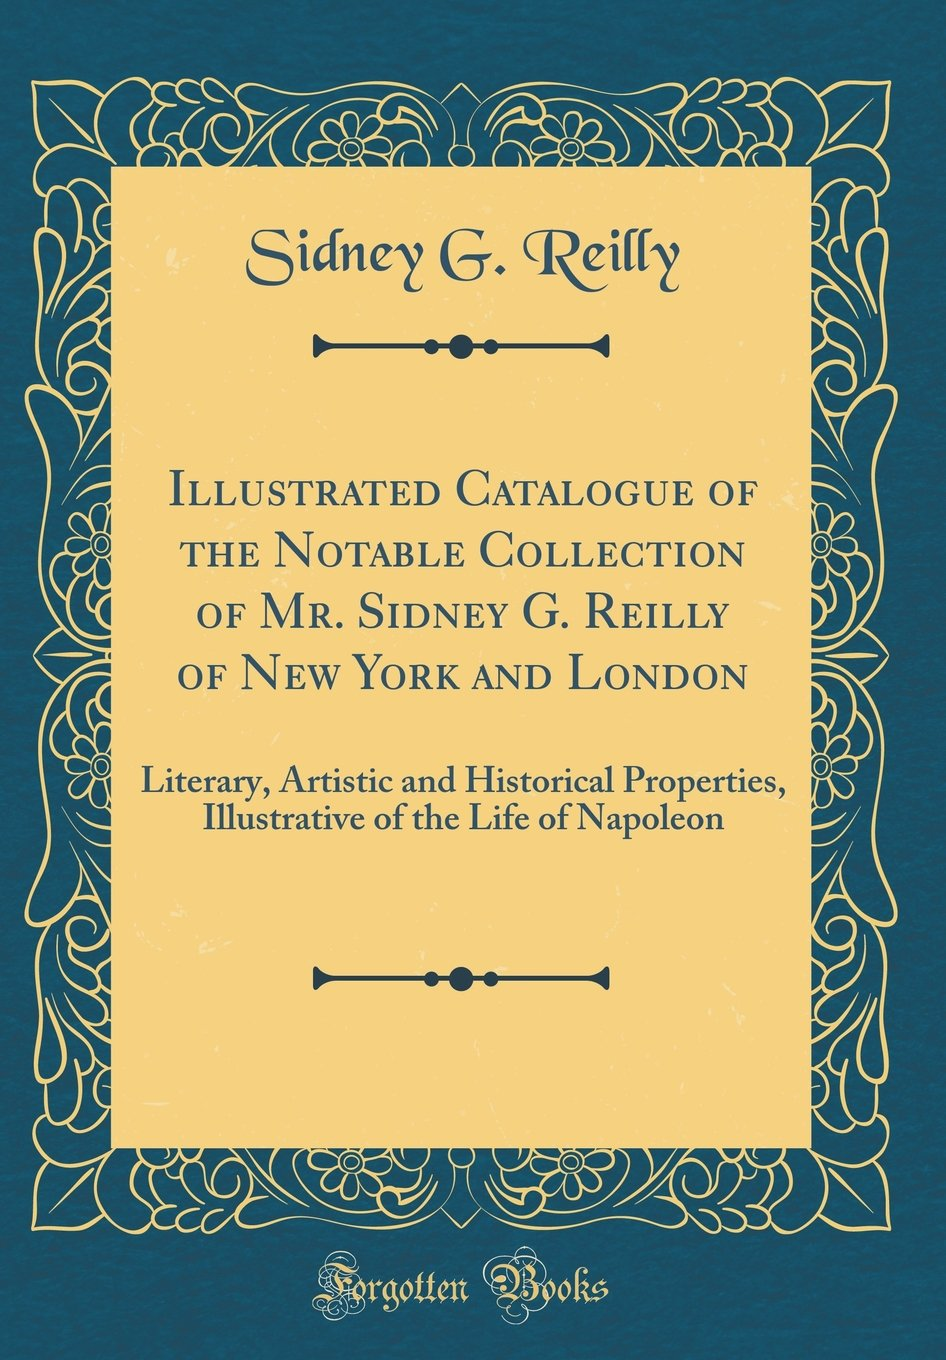 Illustrated Catalogue of the Notable Collection of Mr. Sidney G. Reilly of New York and London: Literary, Artistic and Historical Properties, Illustrative of the Life of Napoleon (Classic Reprint) PDF